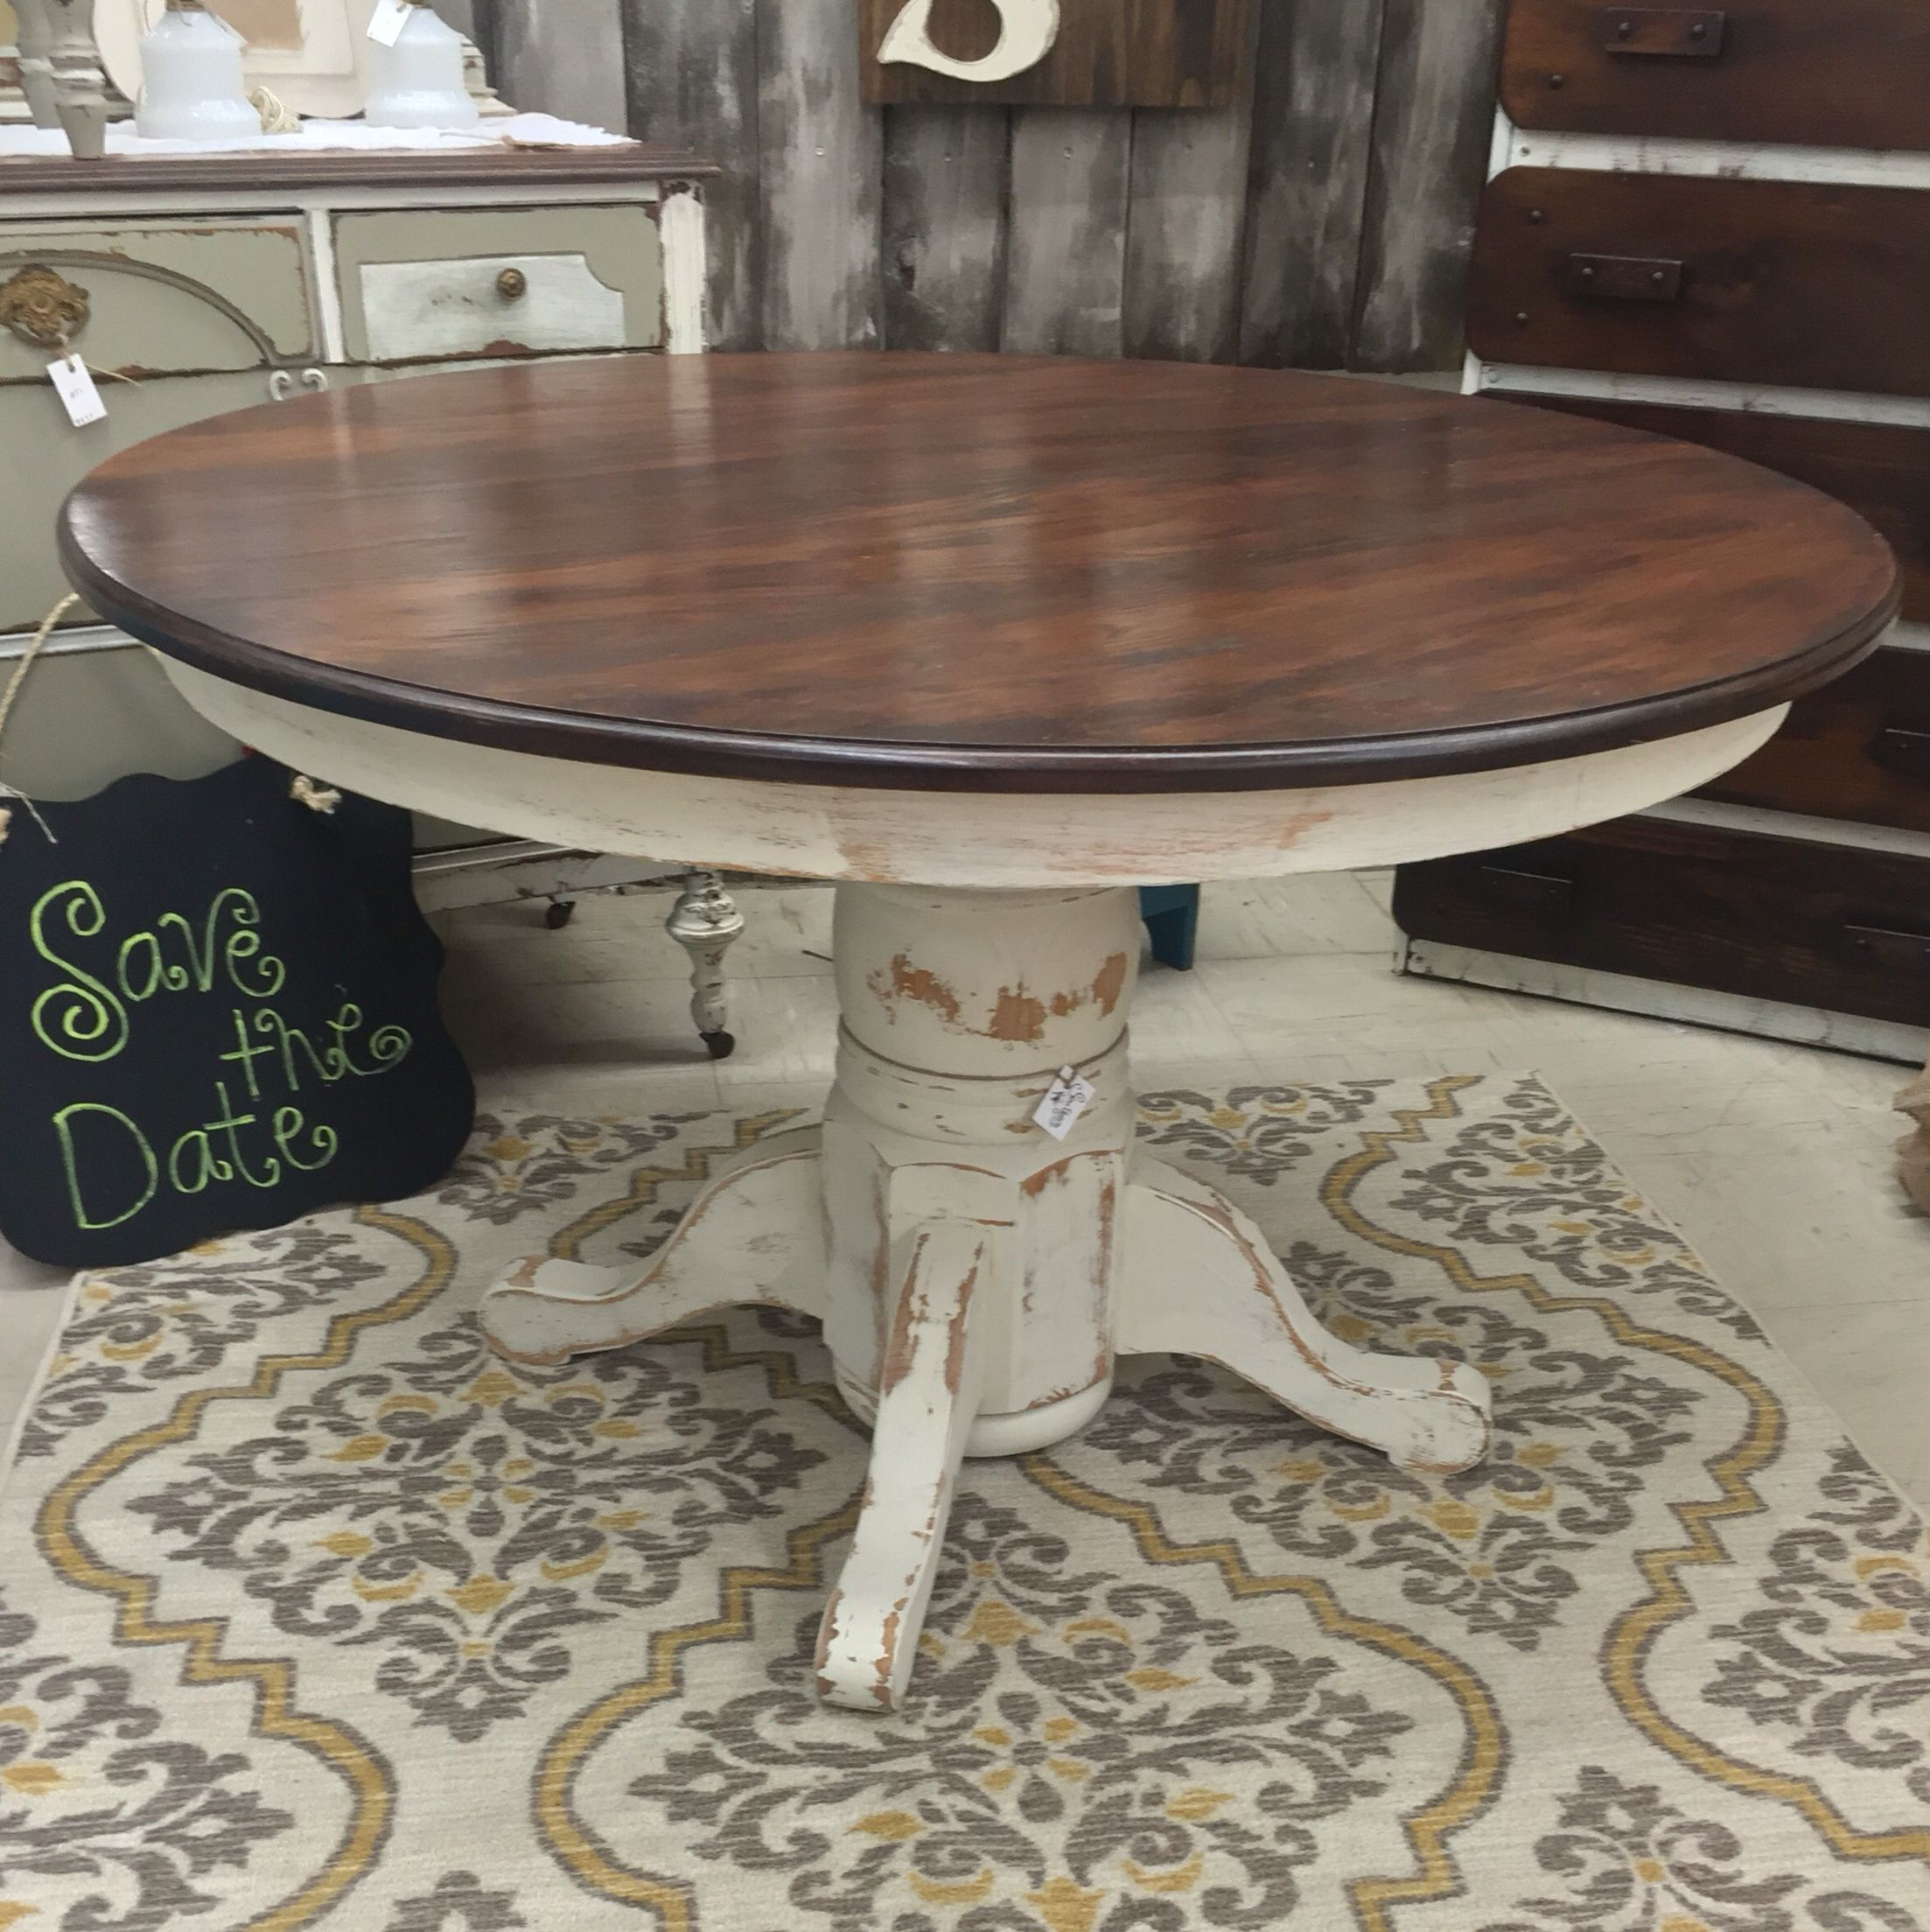 35 Best Images About Refinished Oak Tables On Pinterest: Kitchen Table Painted With #dixiebellepaint And